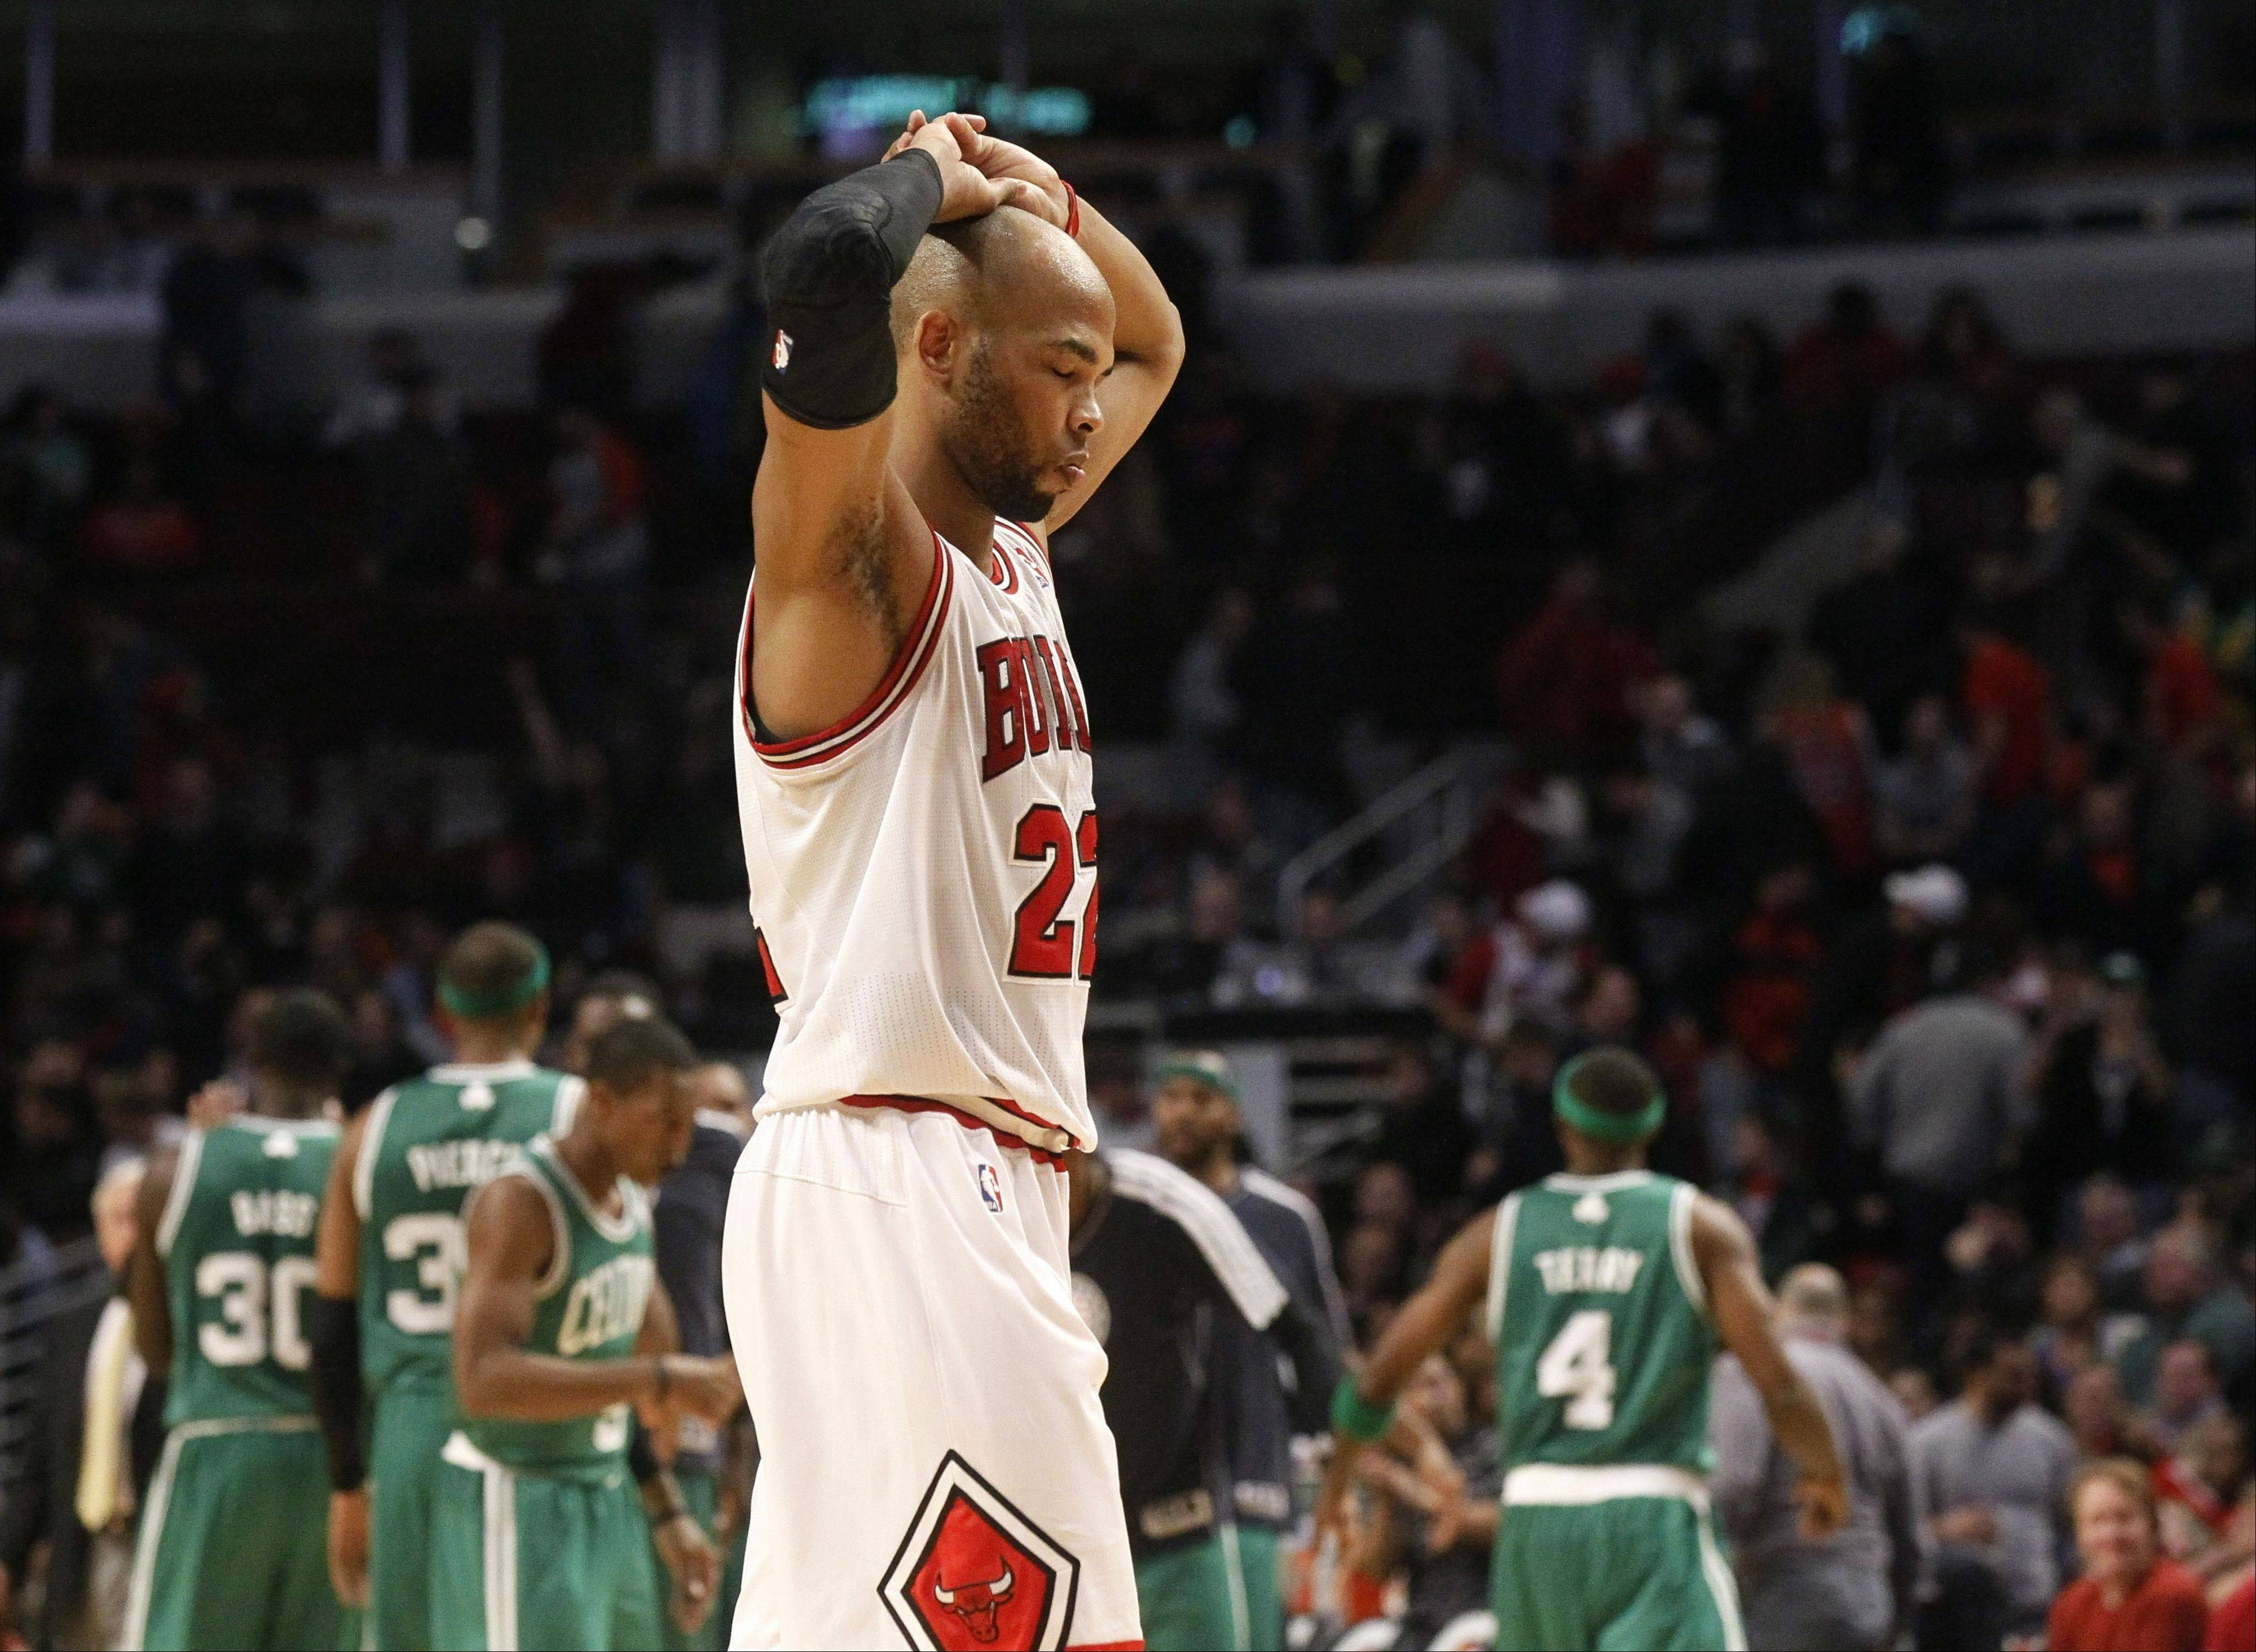 Bulls forward Taj Gibson walks back to the bench during a time out during the closing seconds of Monday's loss to the Celtice at United Center.